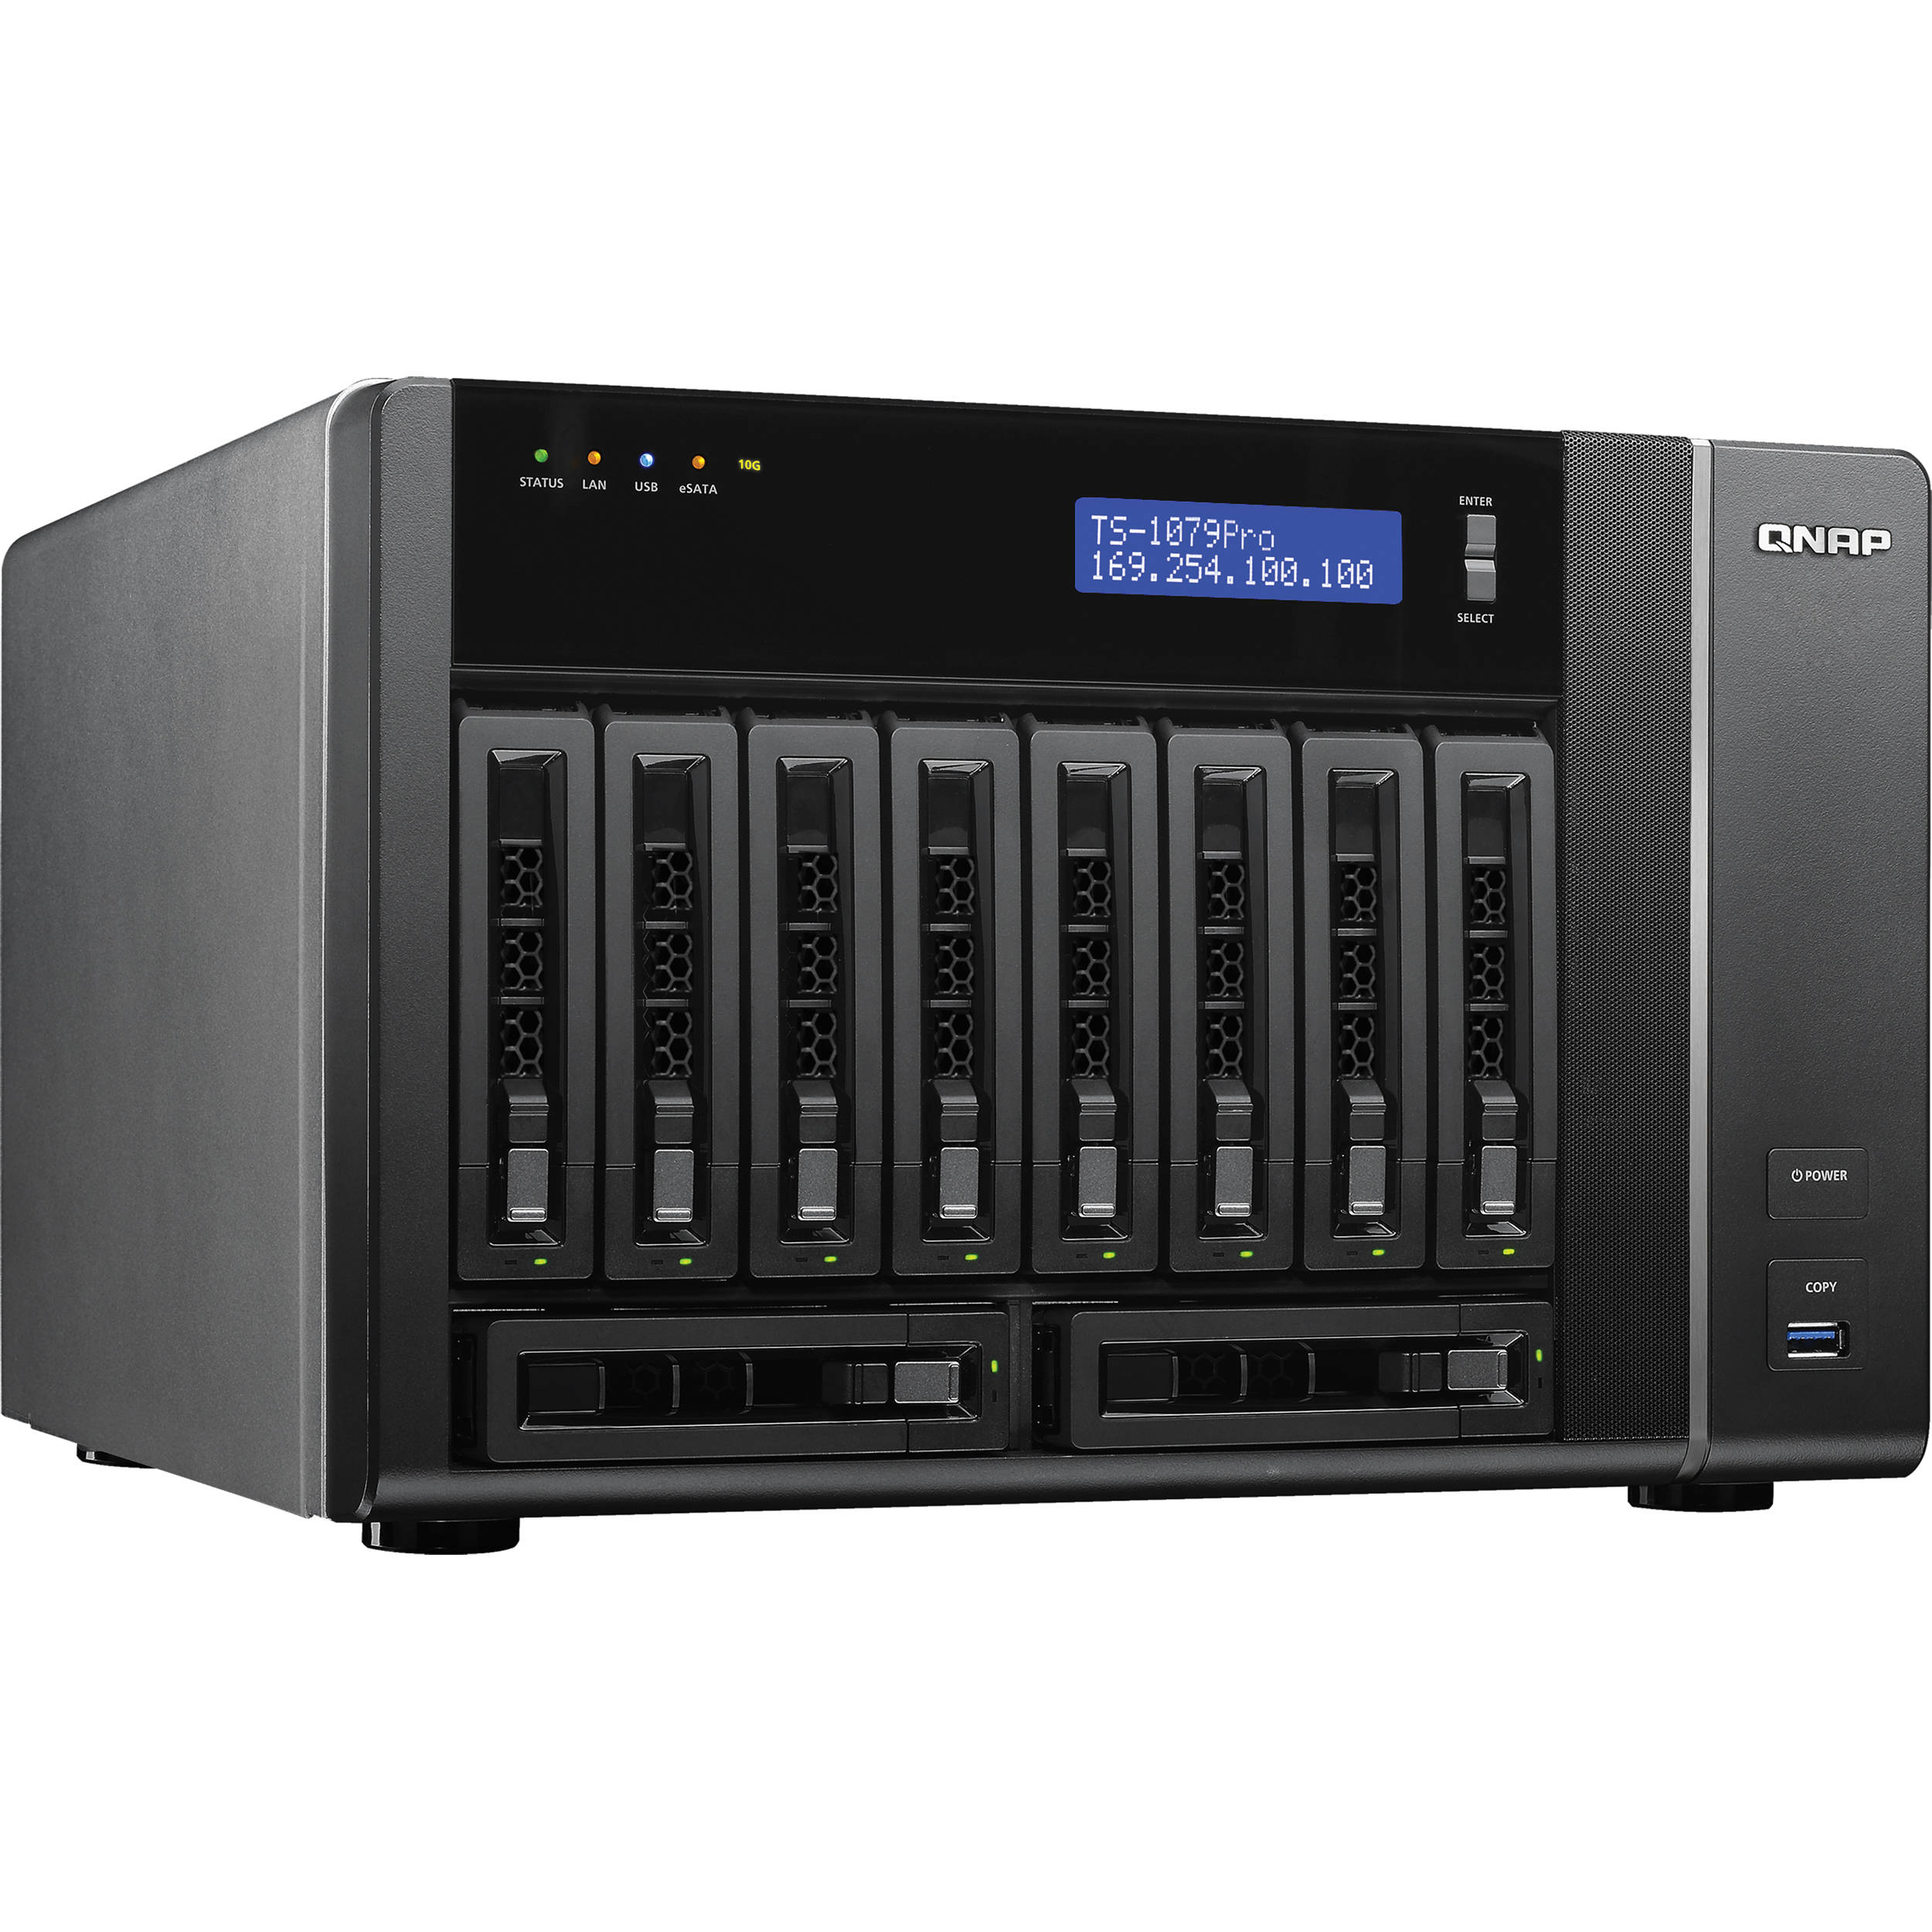 QNAP TS-1079 Pro 10 Bay Turbo NAS Server with 10GbE Network Ready Bundle